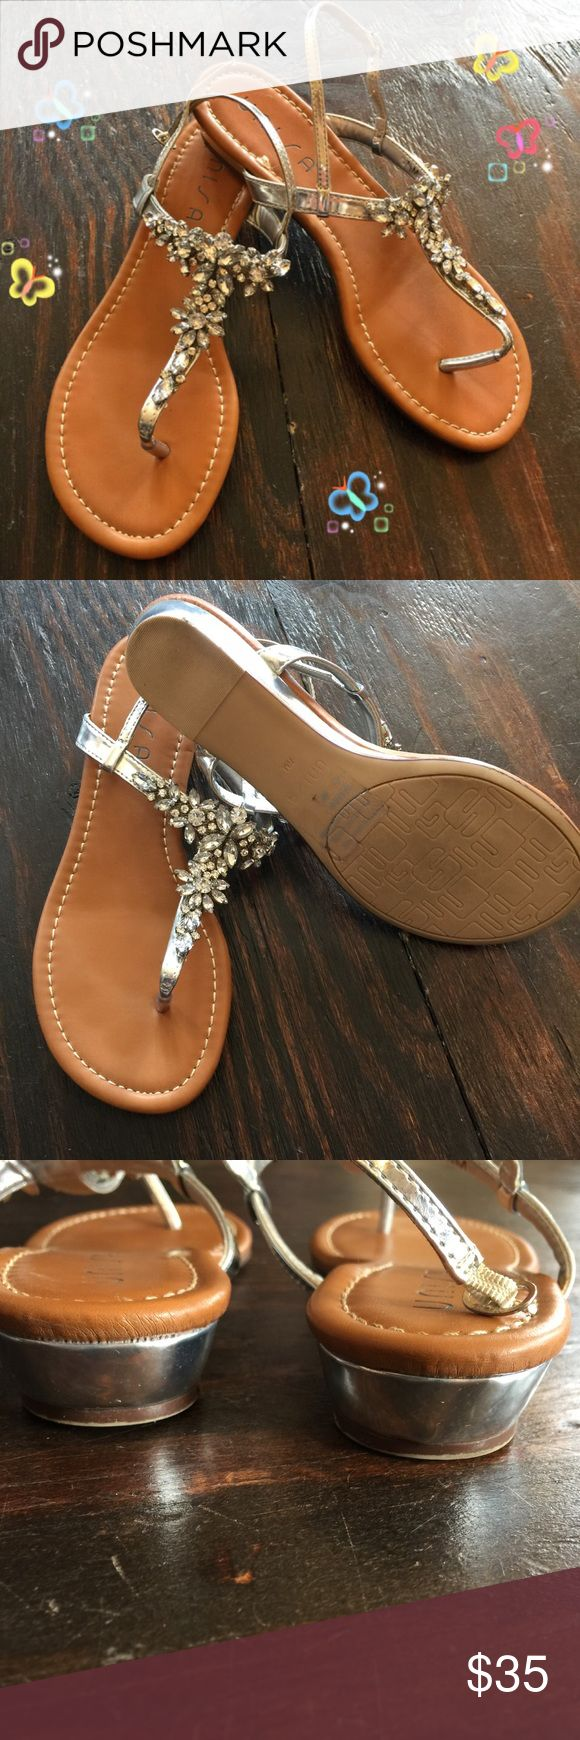 Unisa Silver Jeweled sandals Unisa Jeweled sandals size 7.5. These gorgeous sandals are perfect with jeans, a cute dress or skirt! Casual or fancy they'll go with anything!!! Only worn once! They are in great condition! Unisa Shoes Sandals